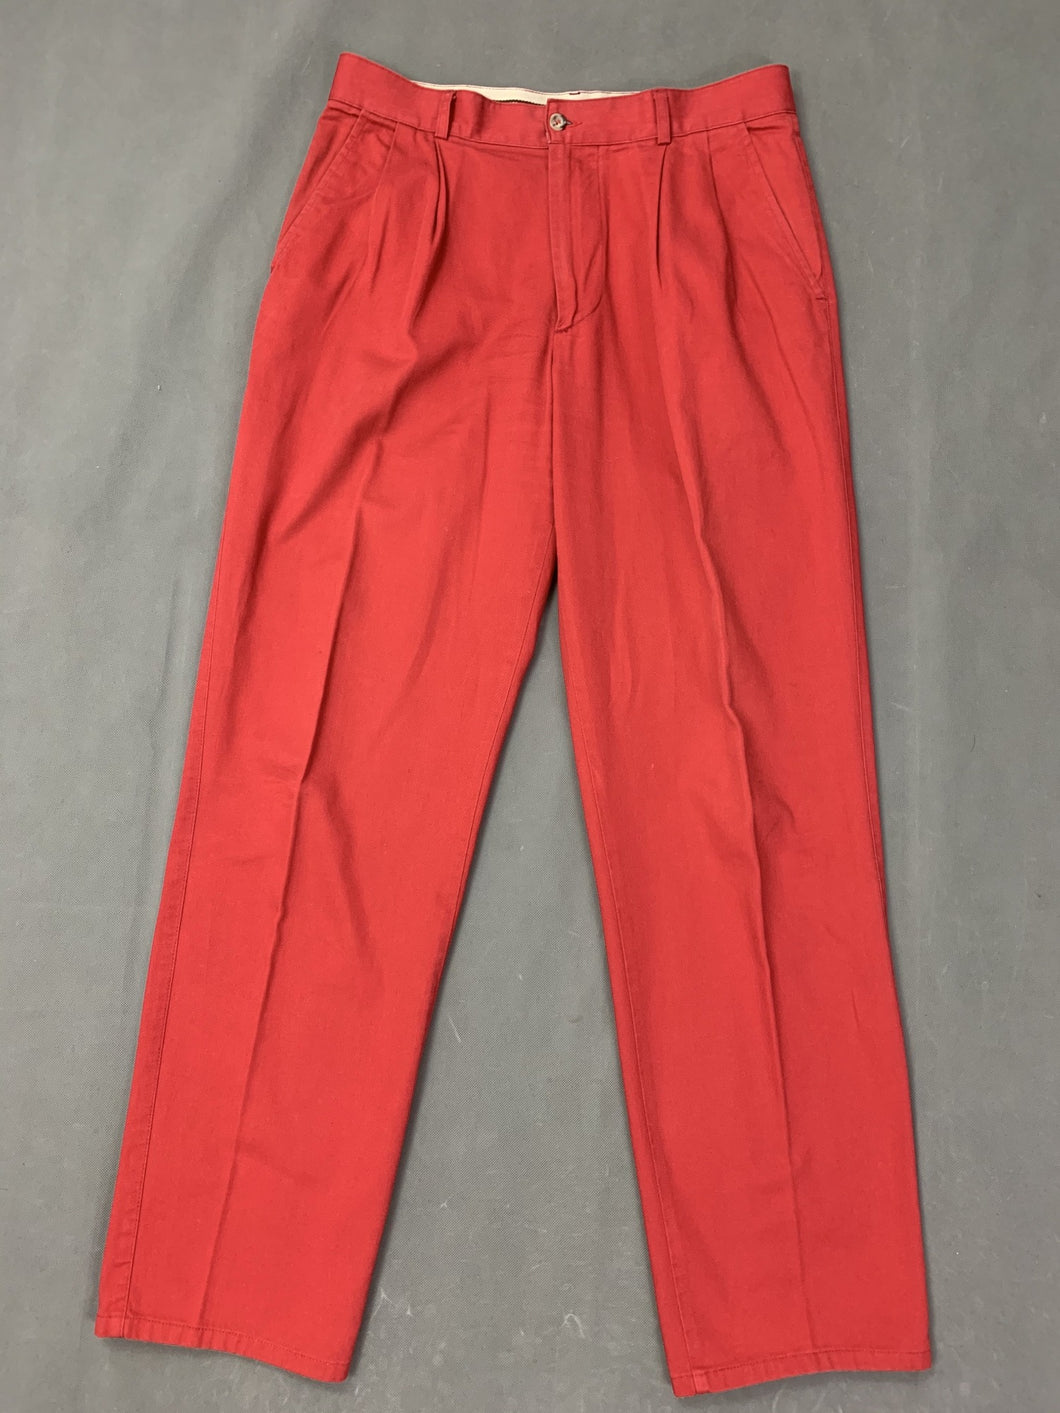 Vintage AQUASCUTUM Mens Red TROUSERS Size Waist 32